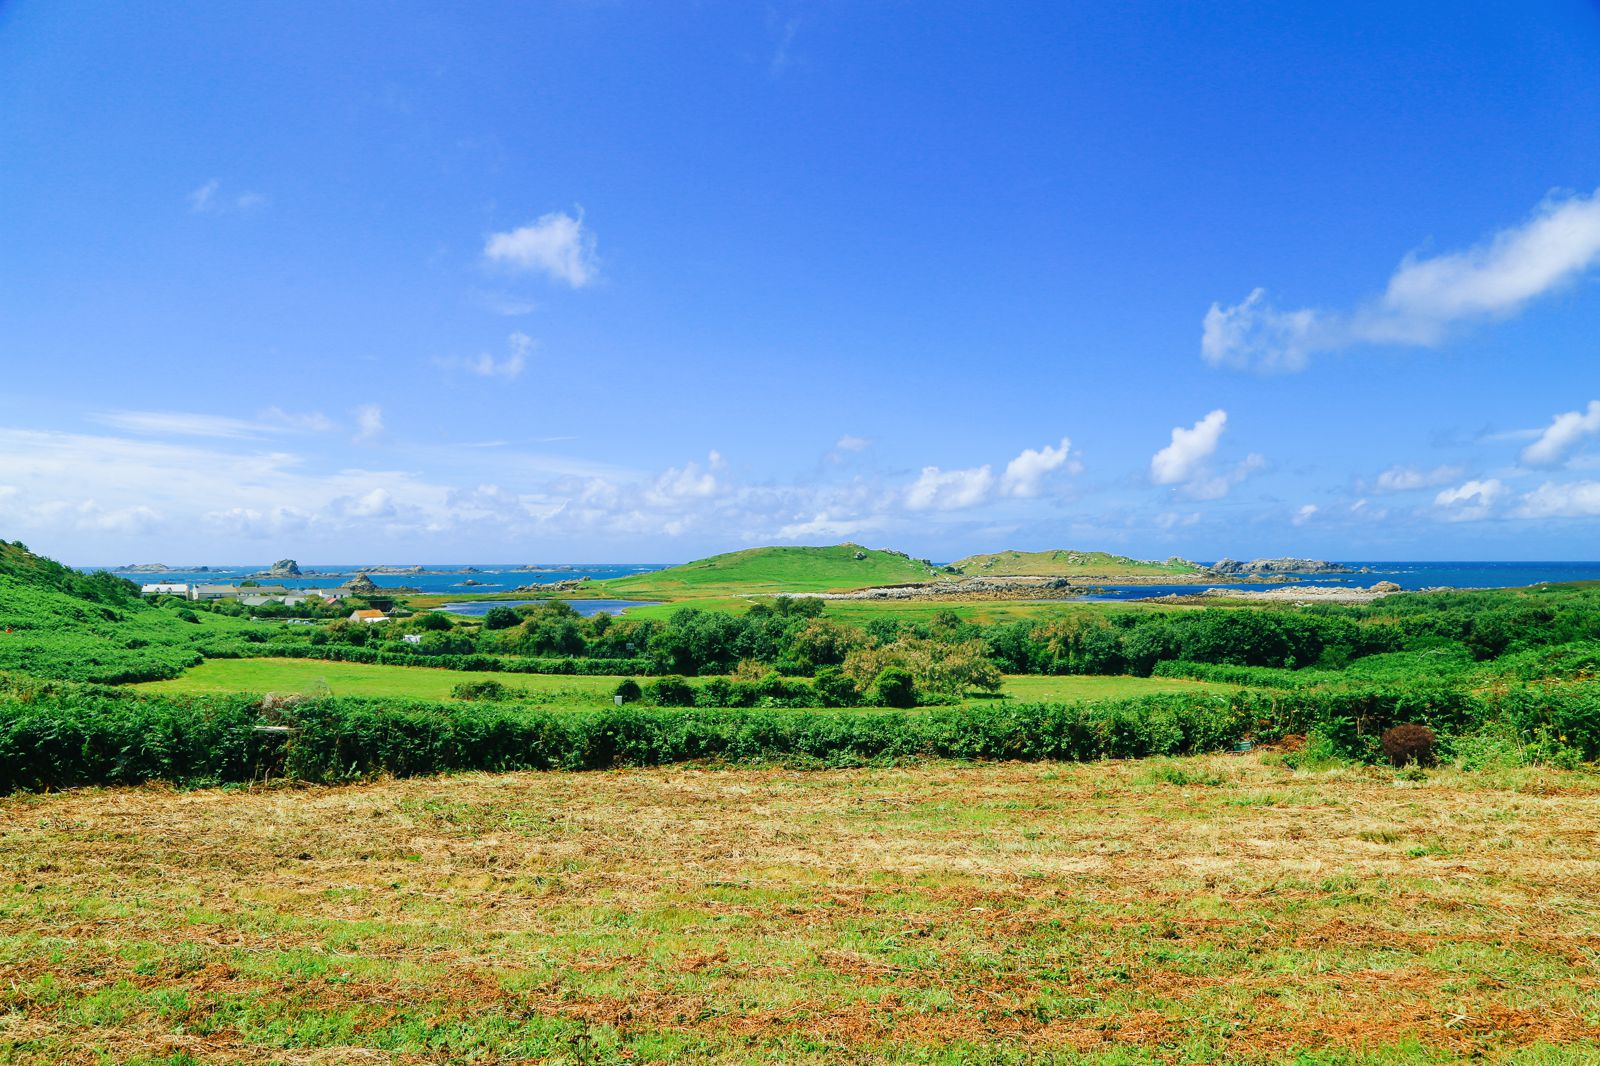 Kayaking in Bryher, Honesty Boxes and Tropical Island Hues... In Bryher Island, Isles of Scilly, UK (25)